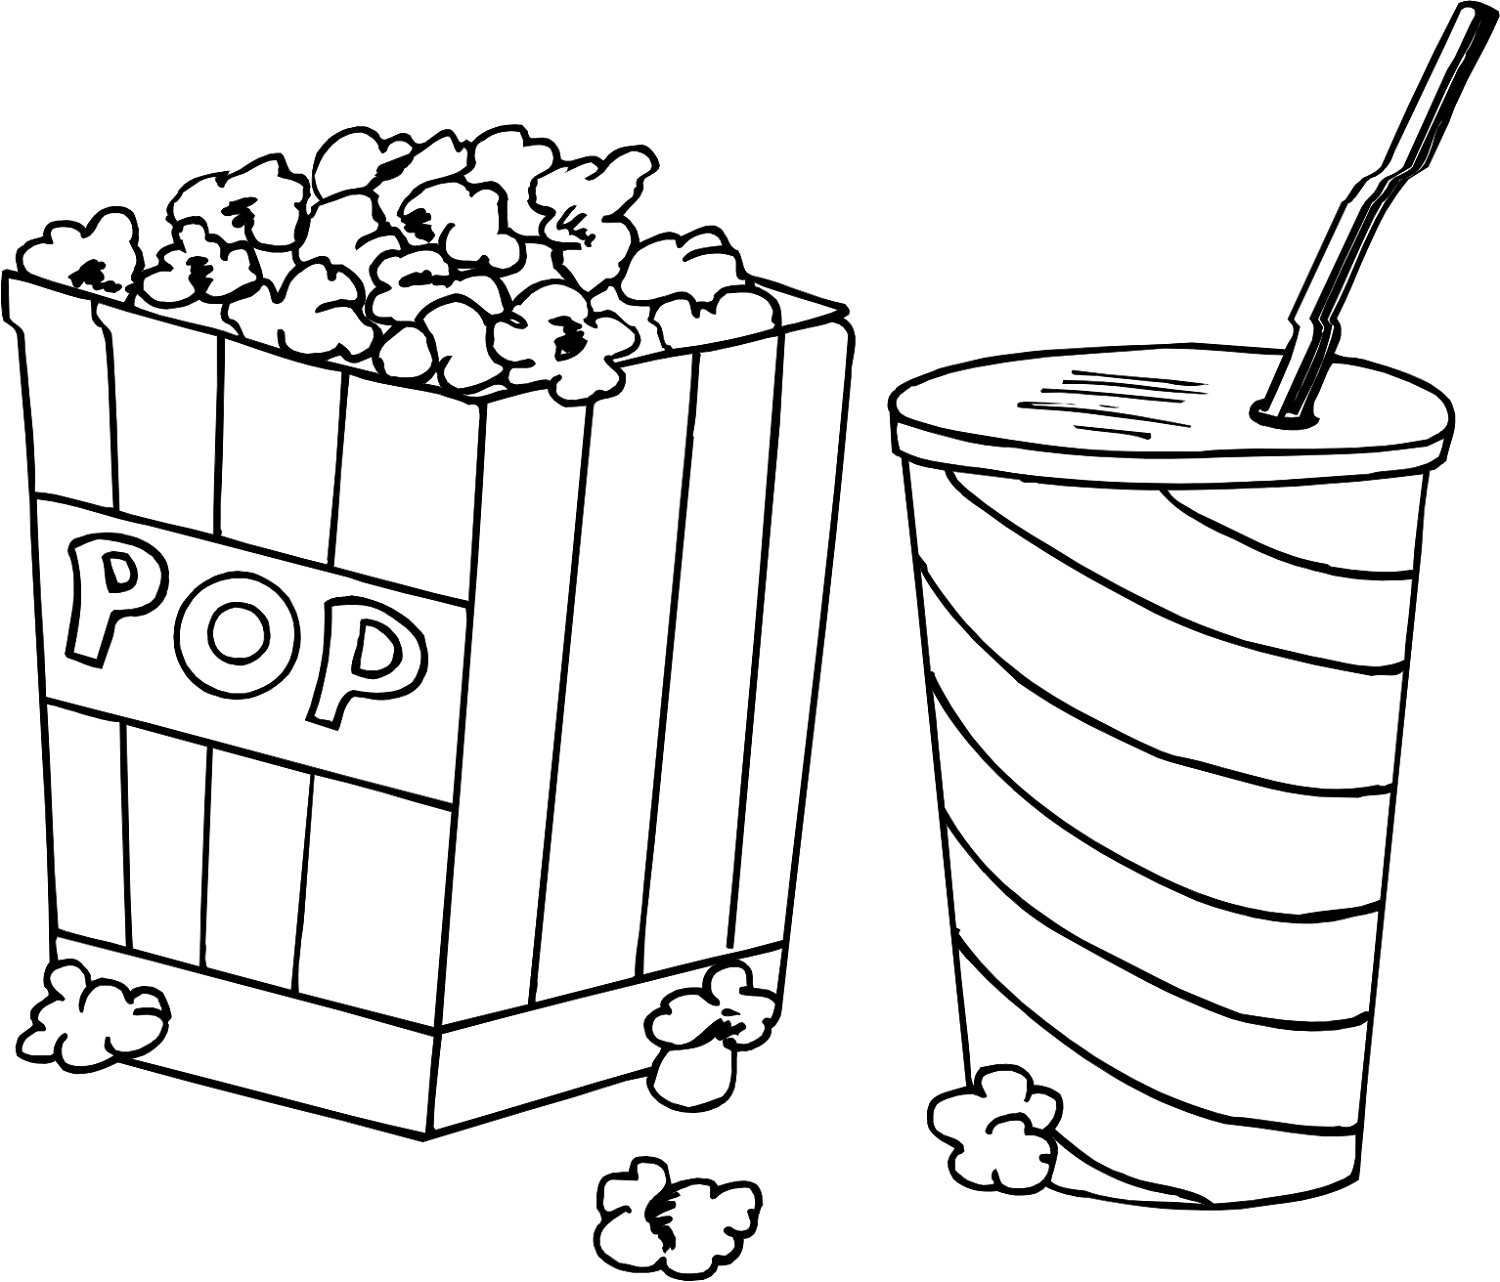 popcorn coloring pictures popcorn coloring pages for kids 101 worksheets pictures popcorn coloring